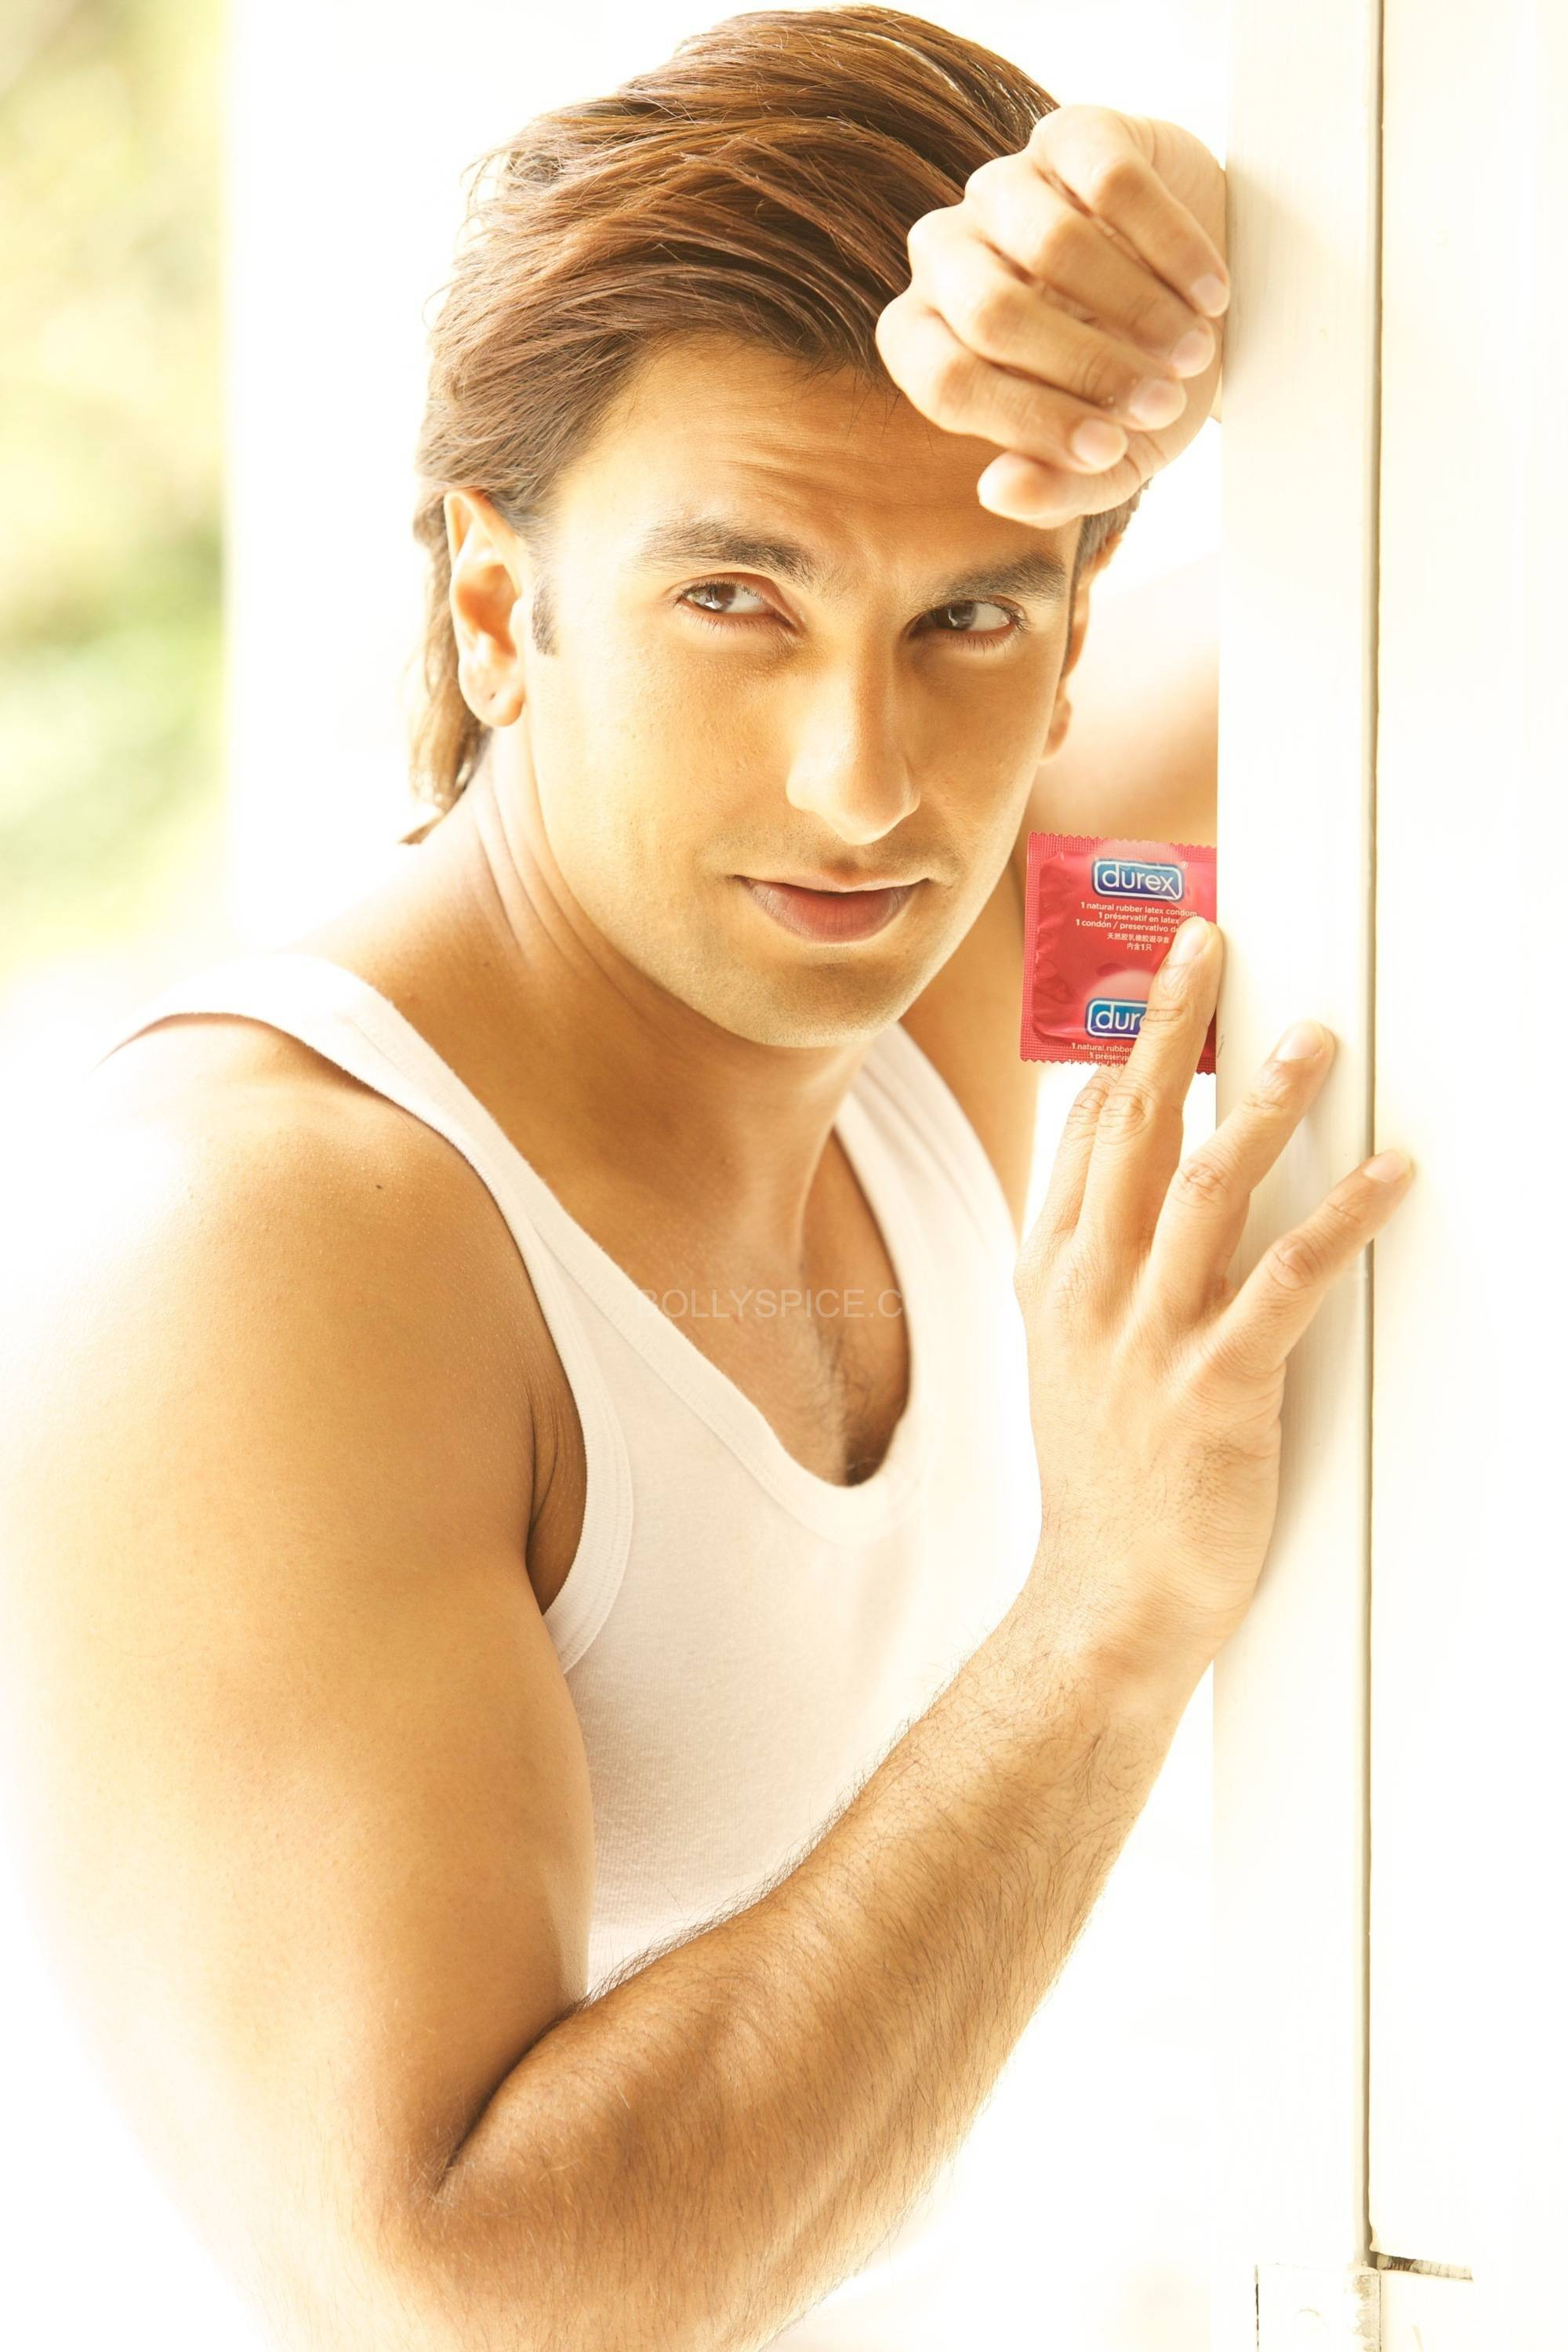 ranveersingh1 Ranveer Singhs new endorsement pushes the envelope!